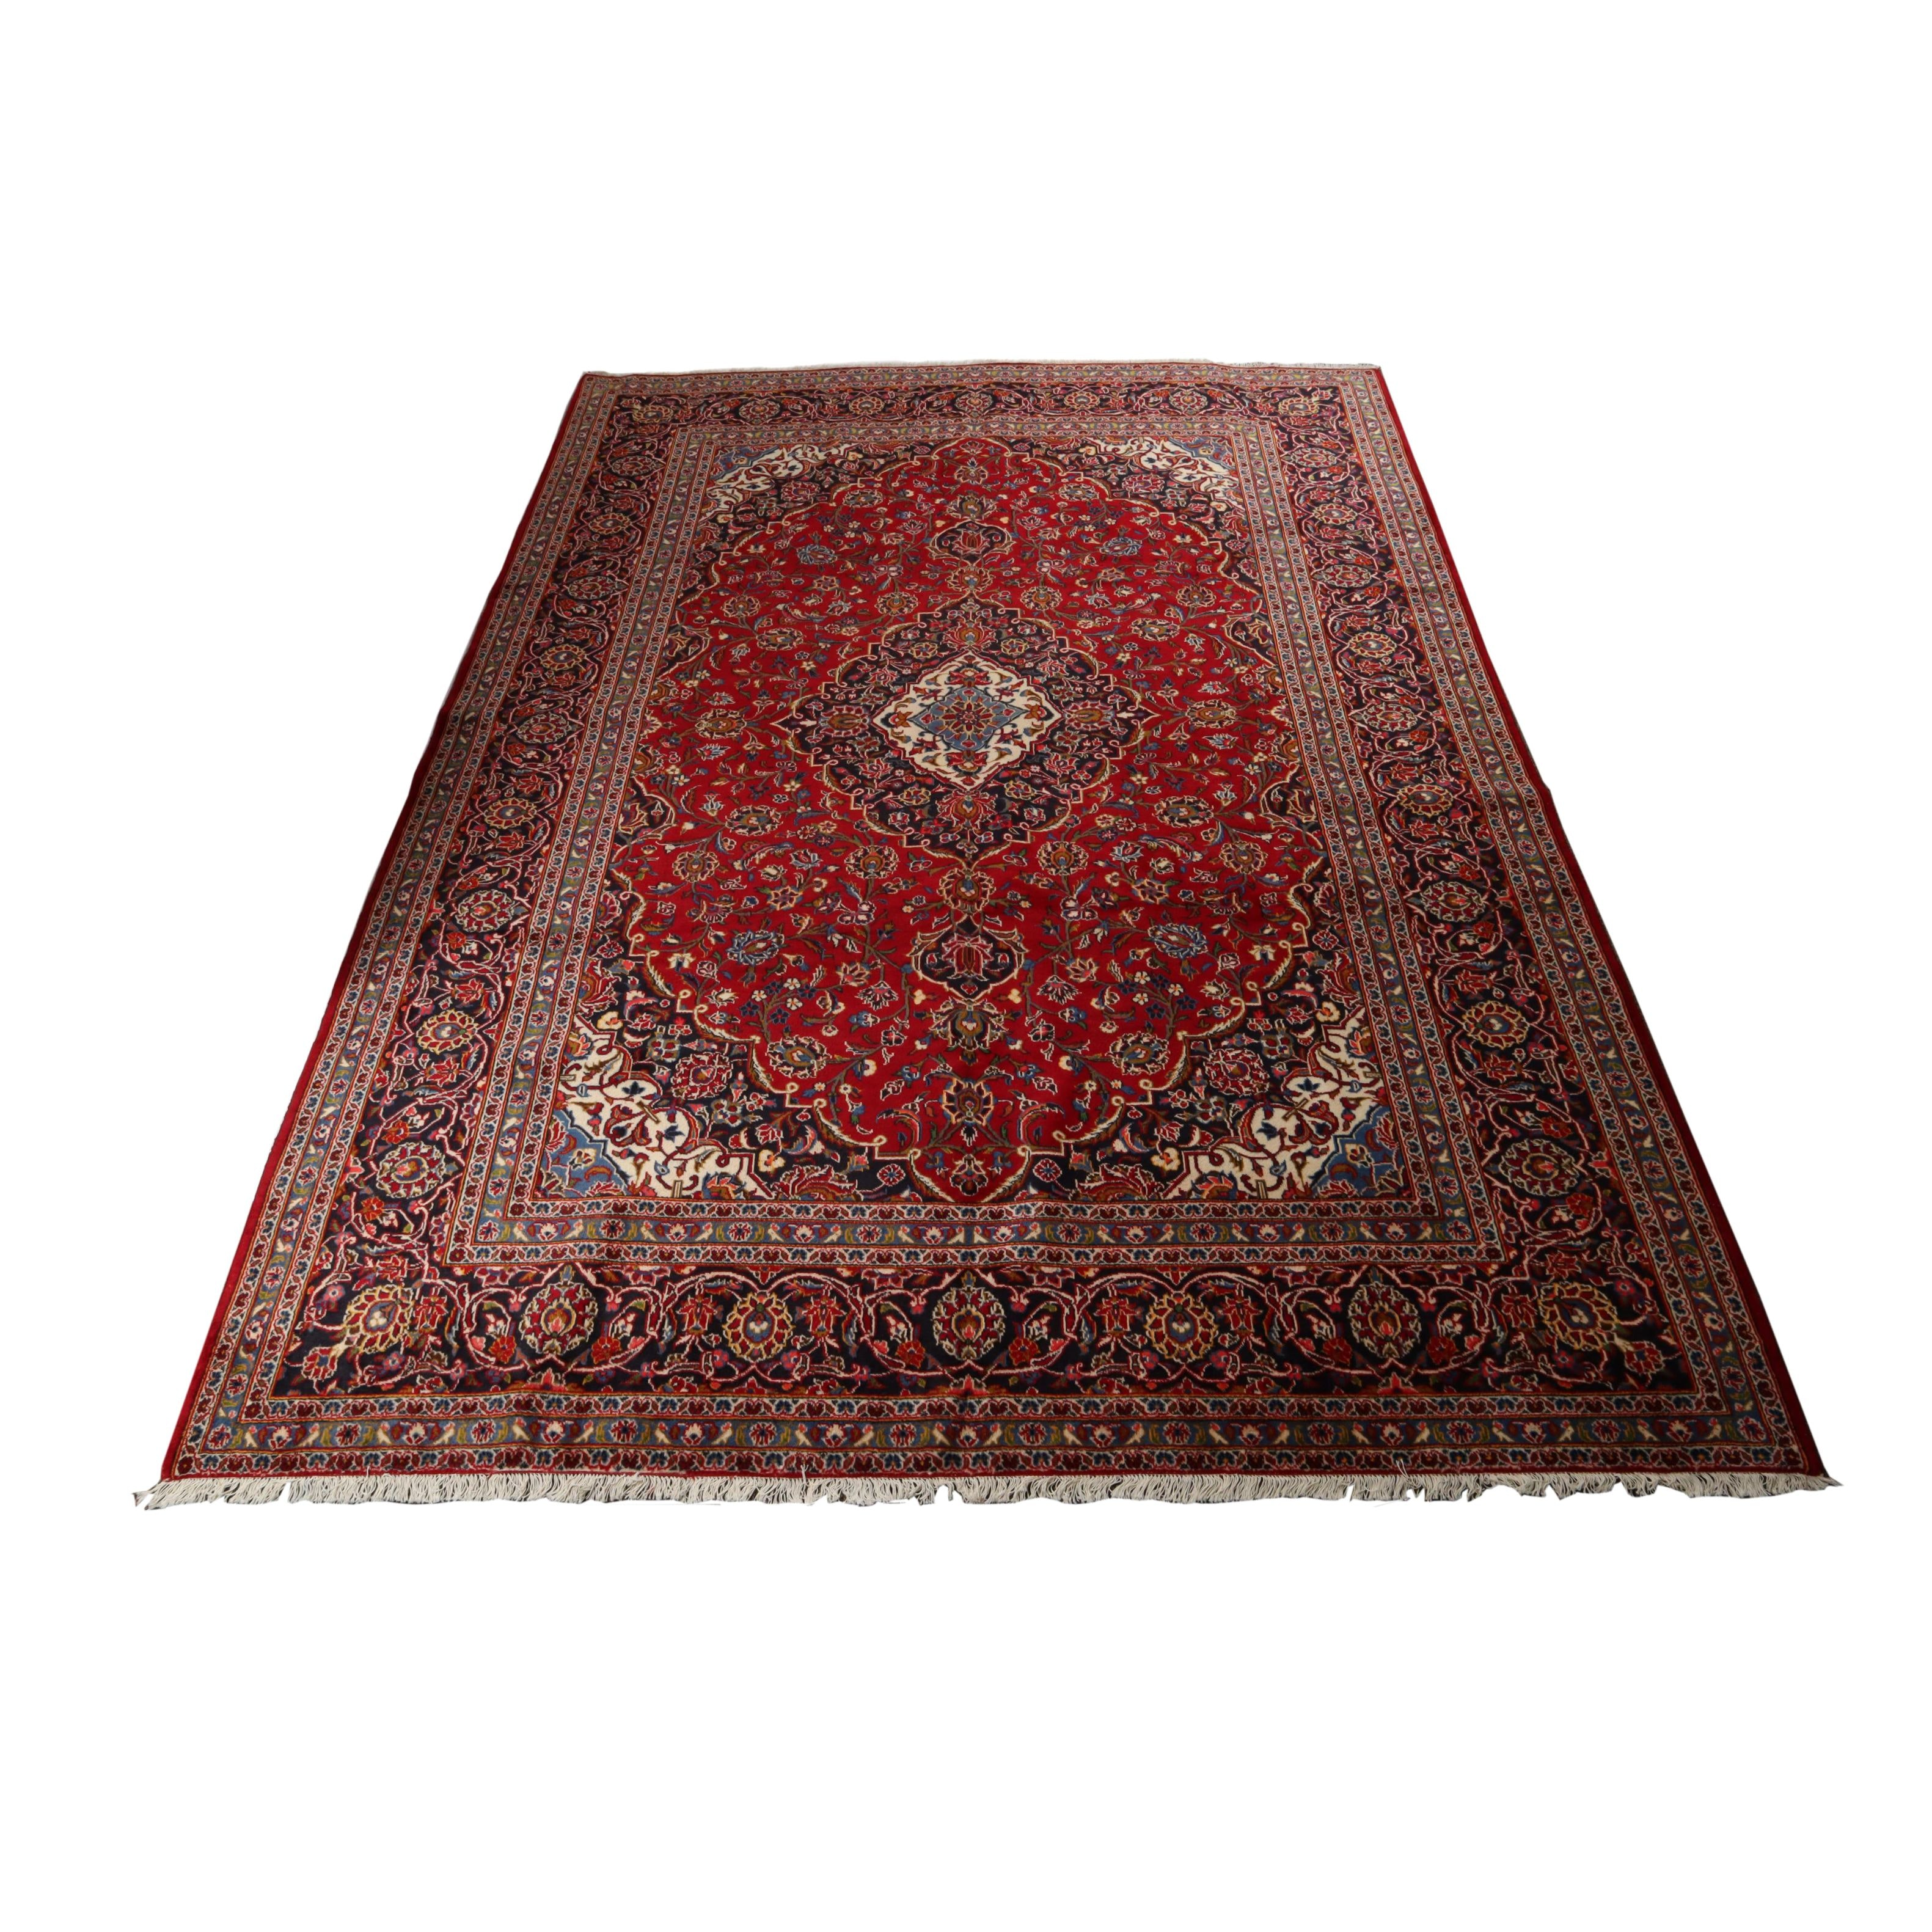 9.9' x 13.5' Hand-Knotted Persian Kashan Rug, Circa 1970s